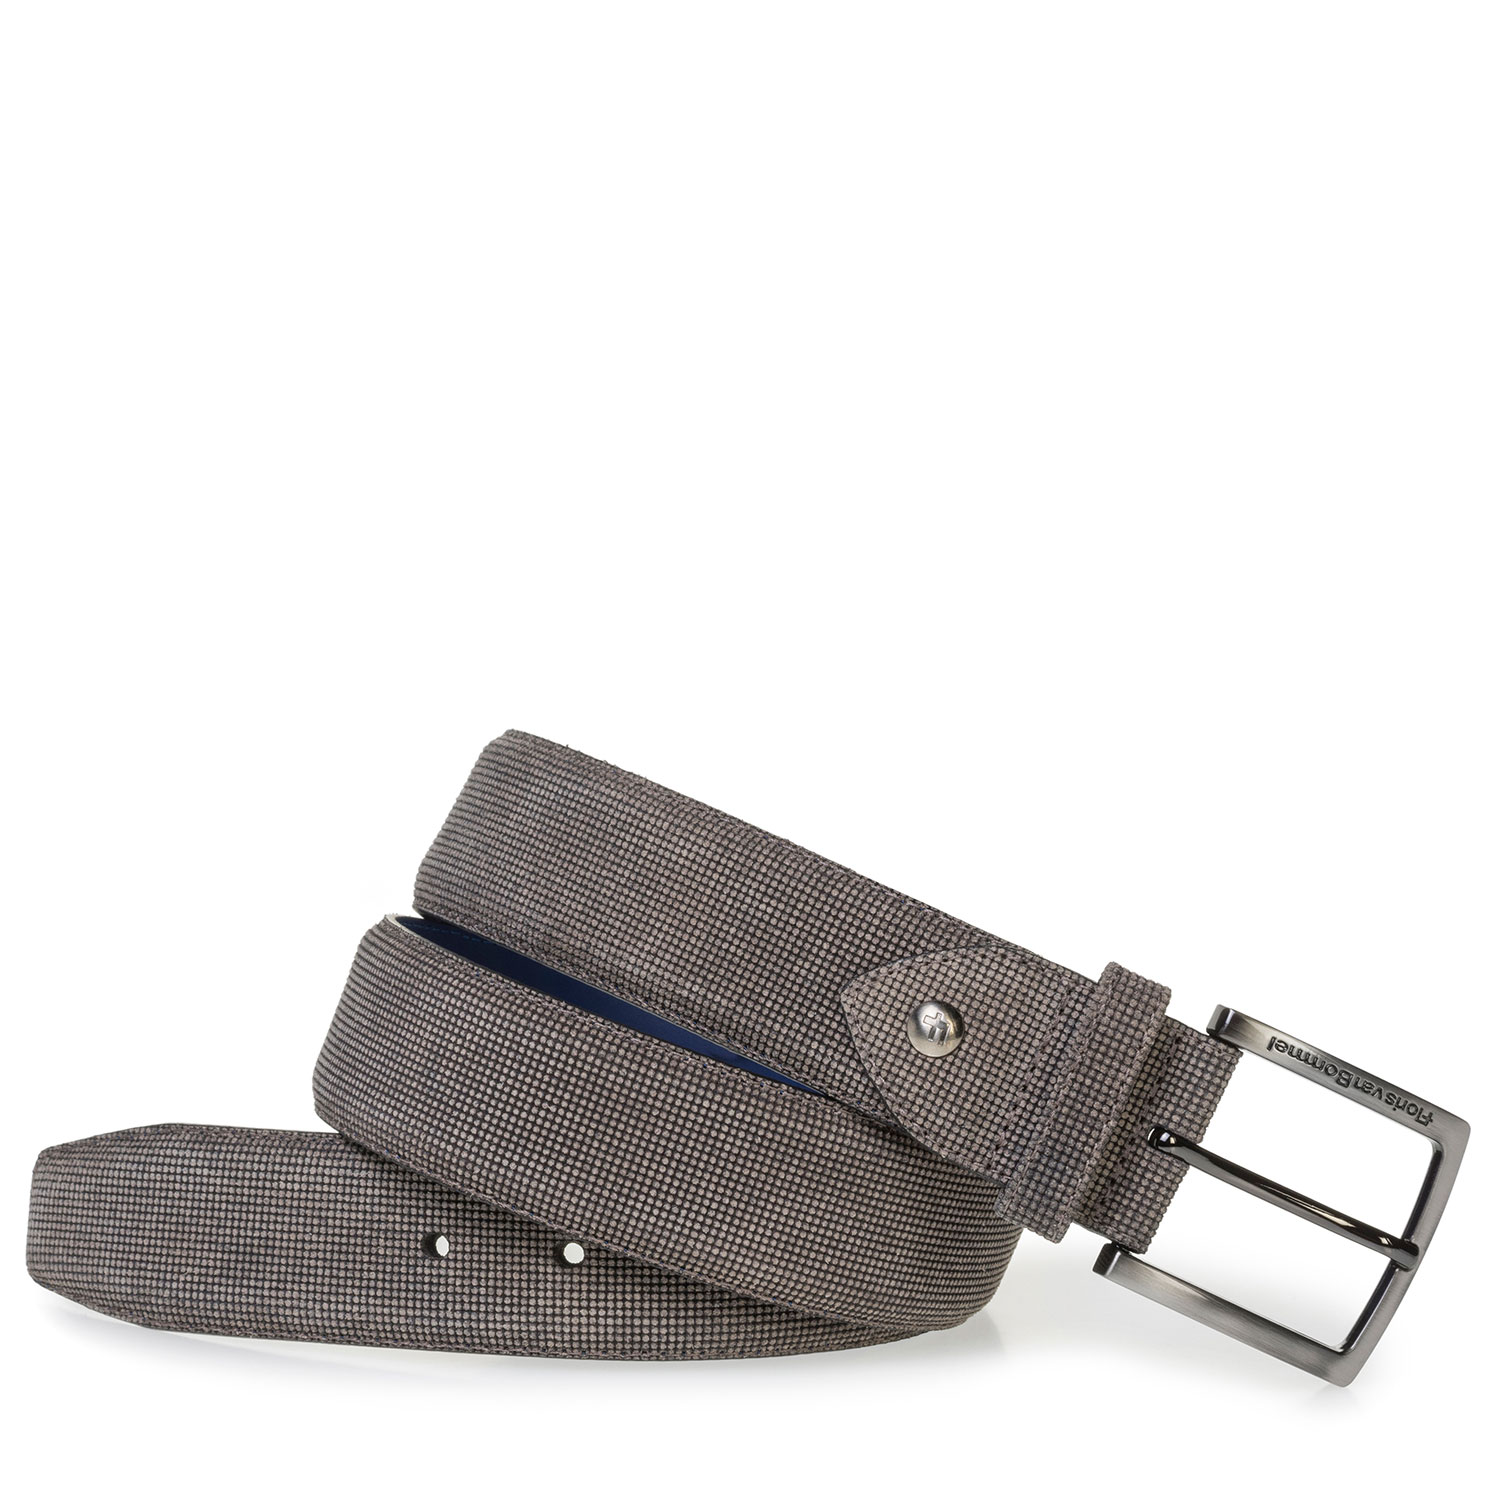 75202/52 - Brown suede leather belt with print